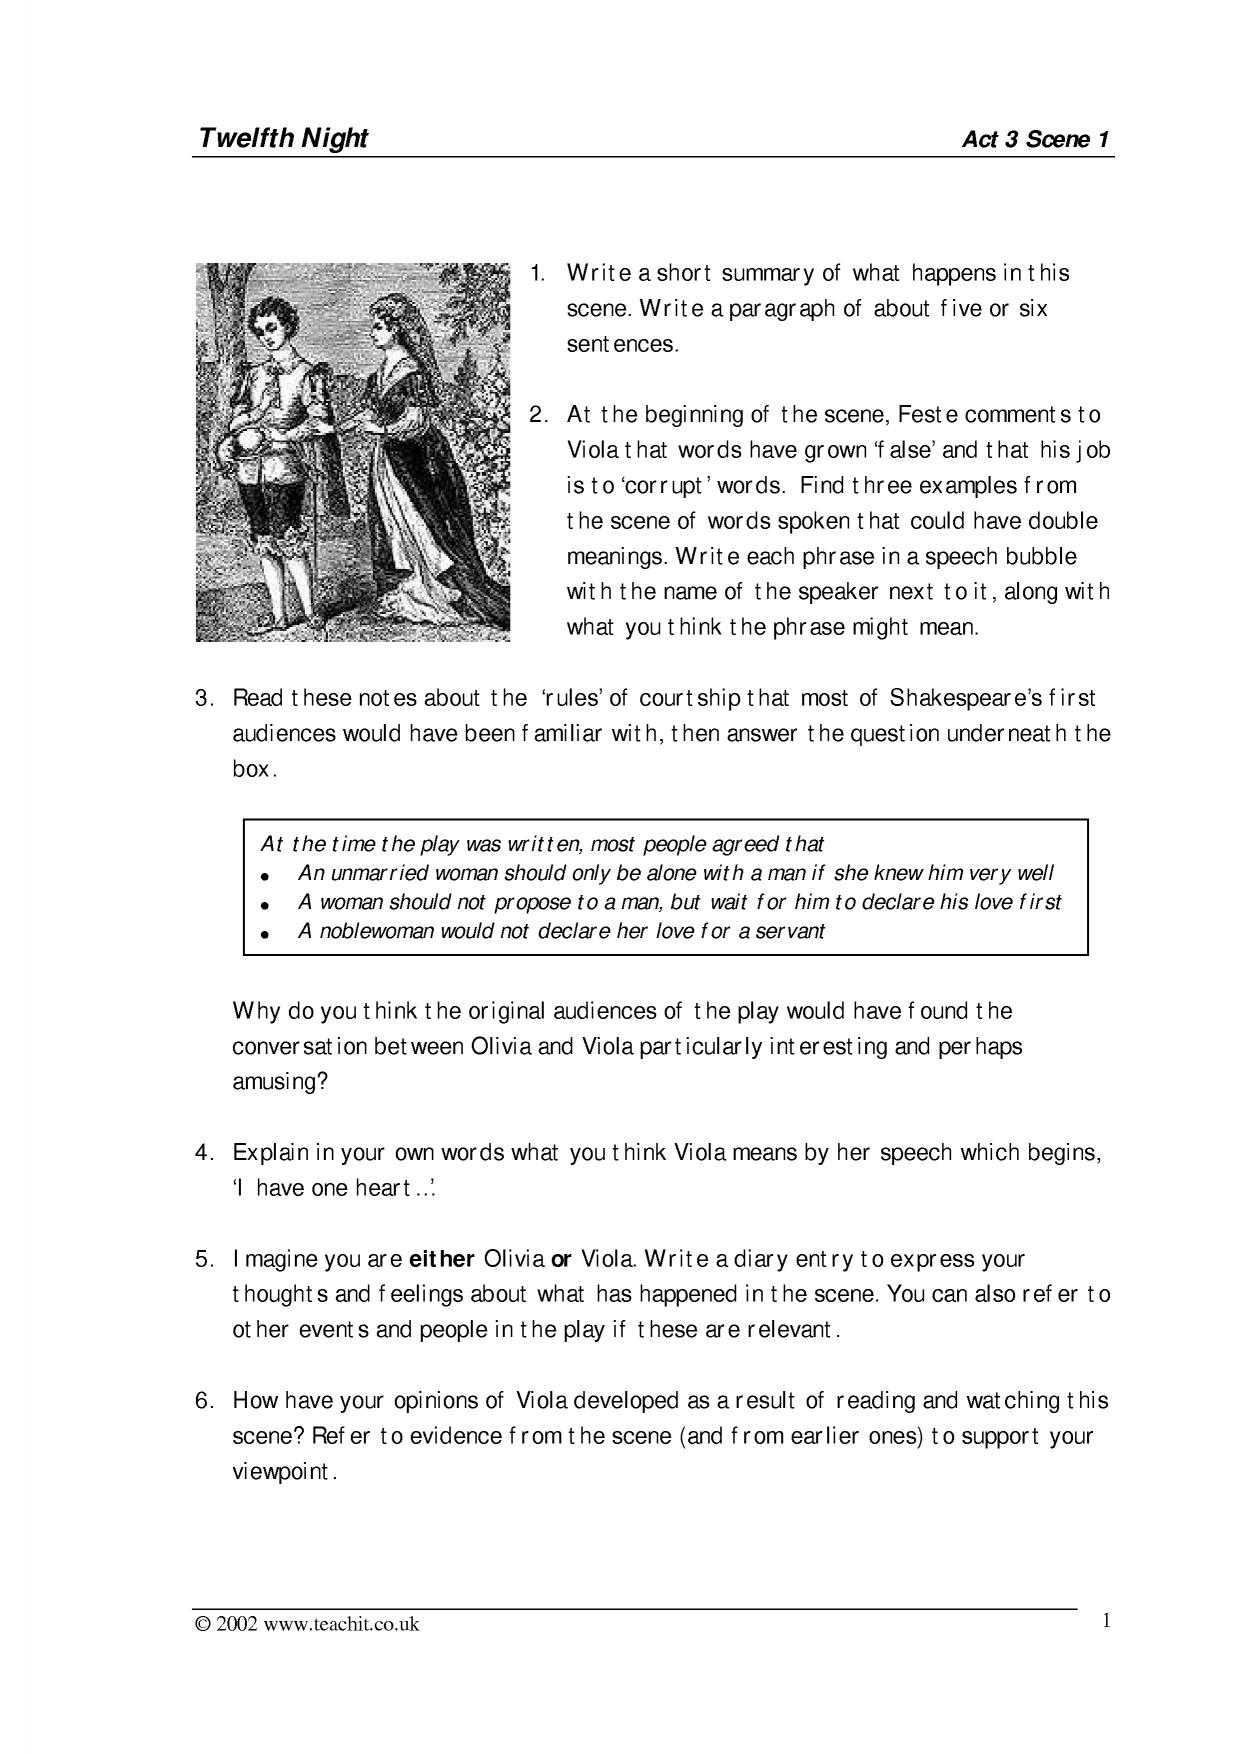 twelfth night act 1 3 A teacher's guide to the signet classic edition of william shakespeare's twelfth night 3 act i, scene v back at olivia's we meet feste, the clown, who will, from time to time, comment ironically on the characters and action.